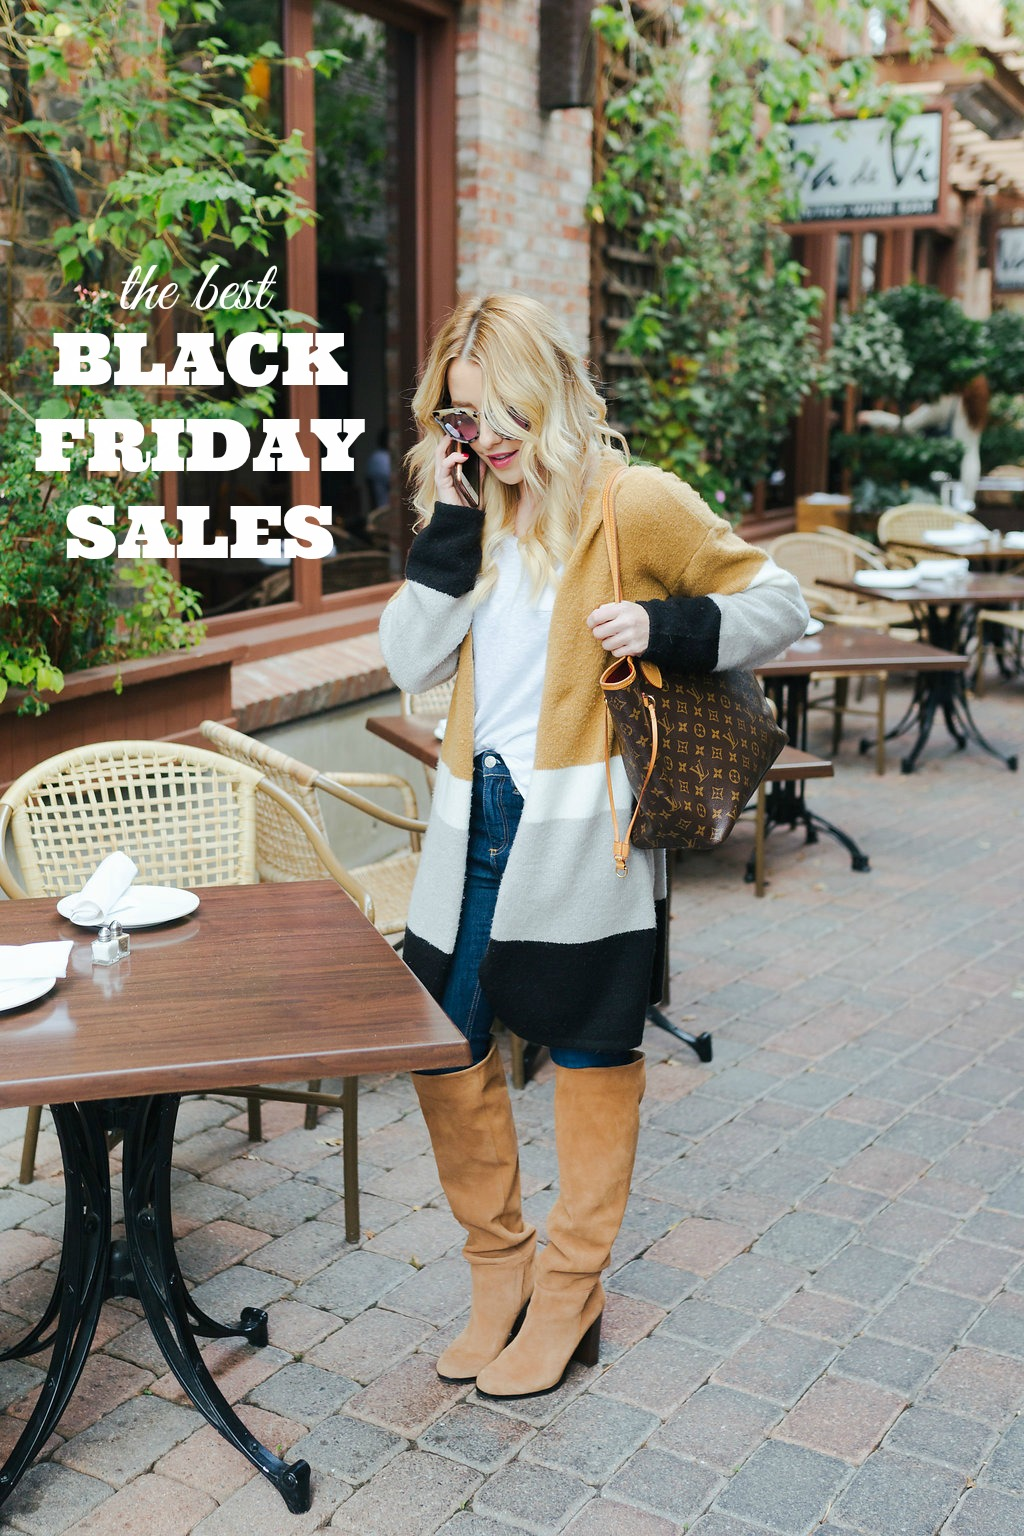 The Best Black Friday Sales by San Francisco fashion blogger For the Love